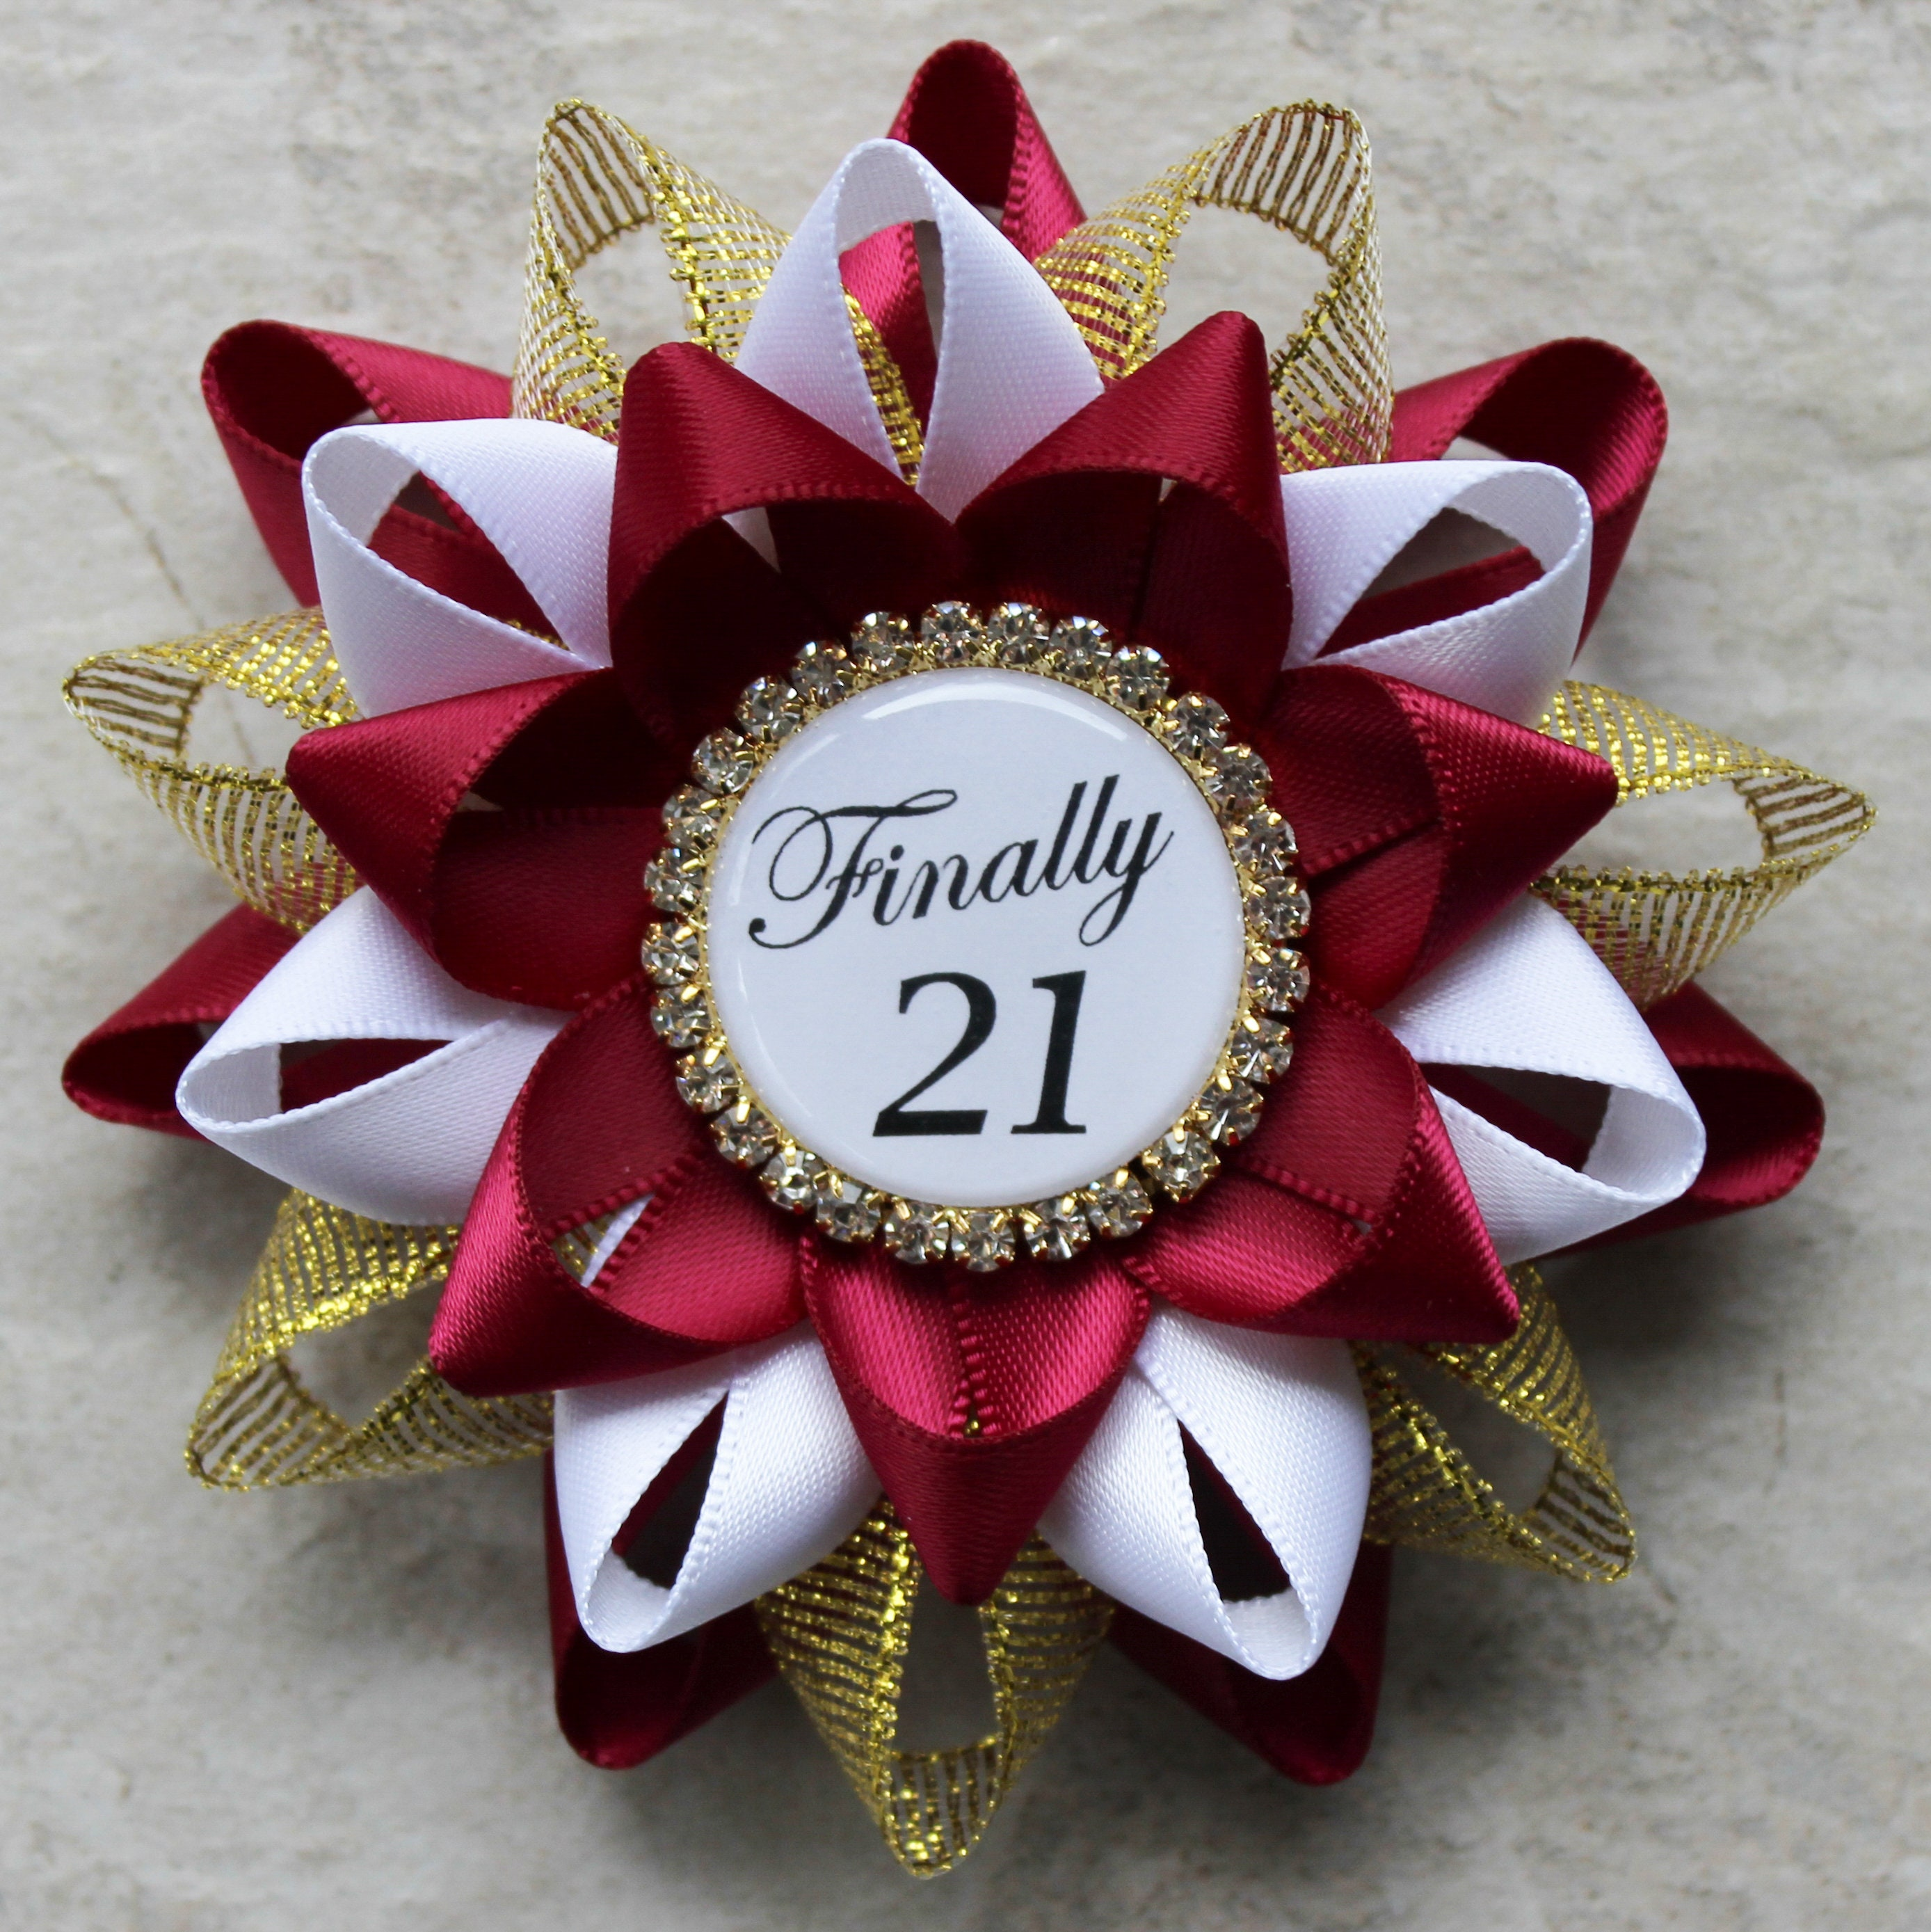 Finally 21 21st Birthday Decorations Gift For Her And